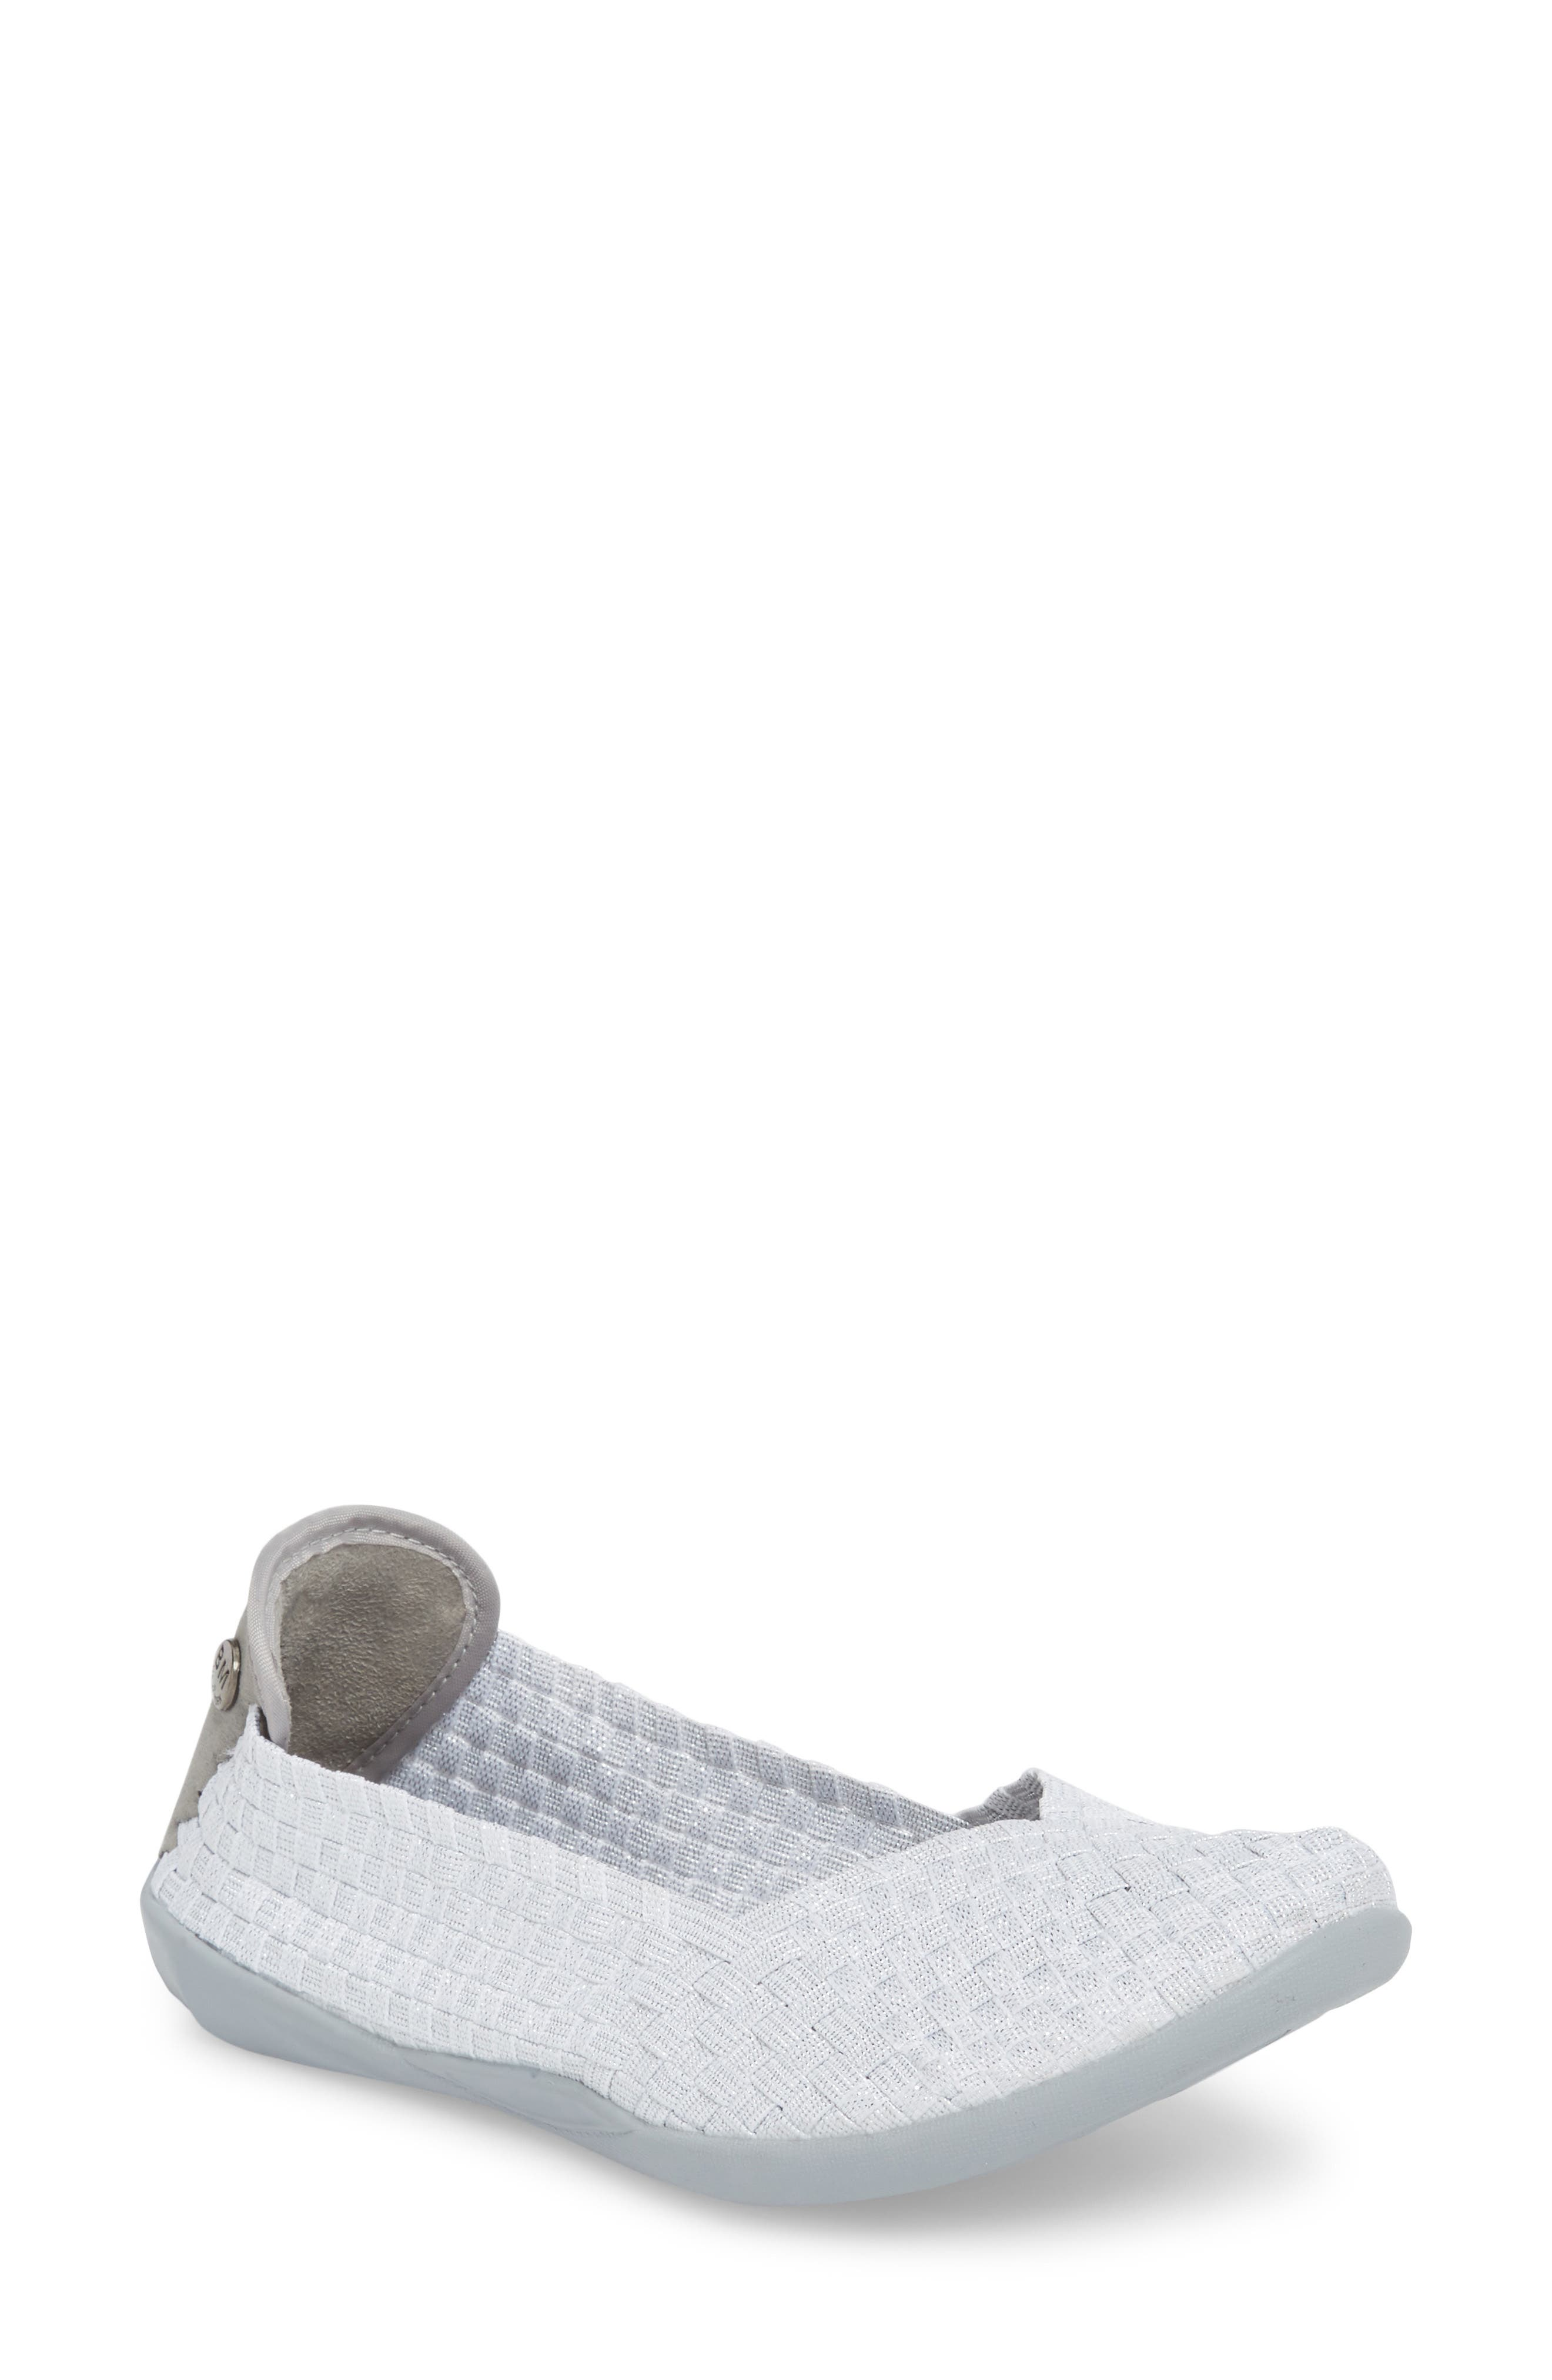 Catwalk Sneaker,                             Main thumbnail 1, color,                             White Shimmer Fabric